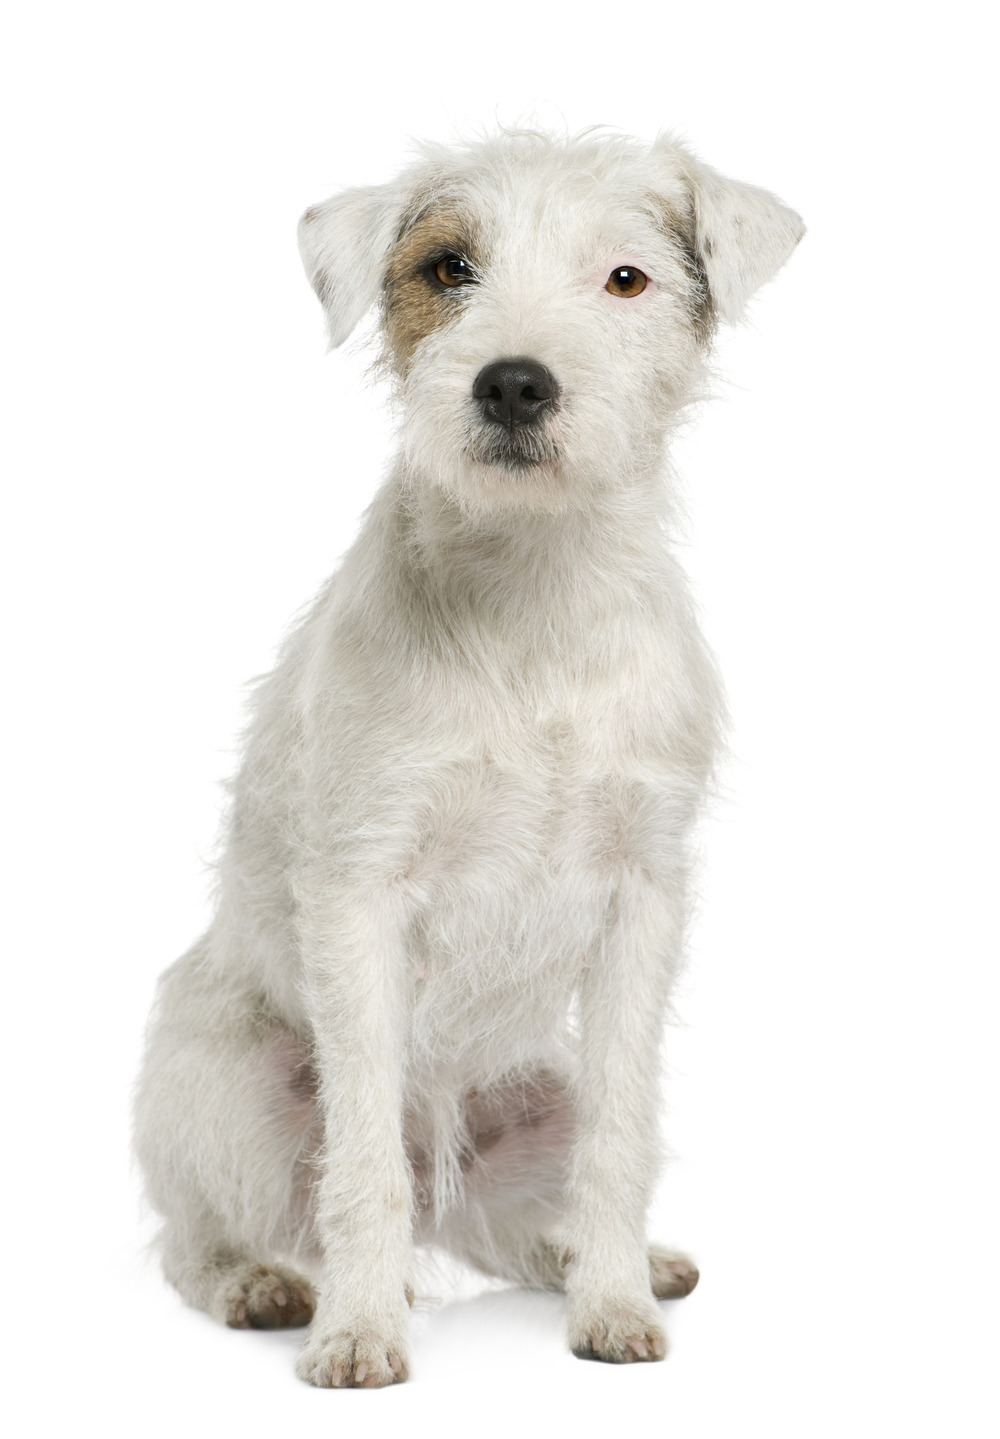 photodune-293785-parson-russell-terrier-sitting-in-front-of-white-background-l.jpg